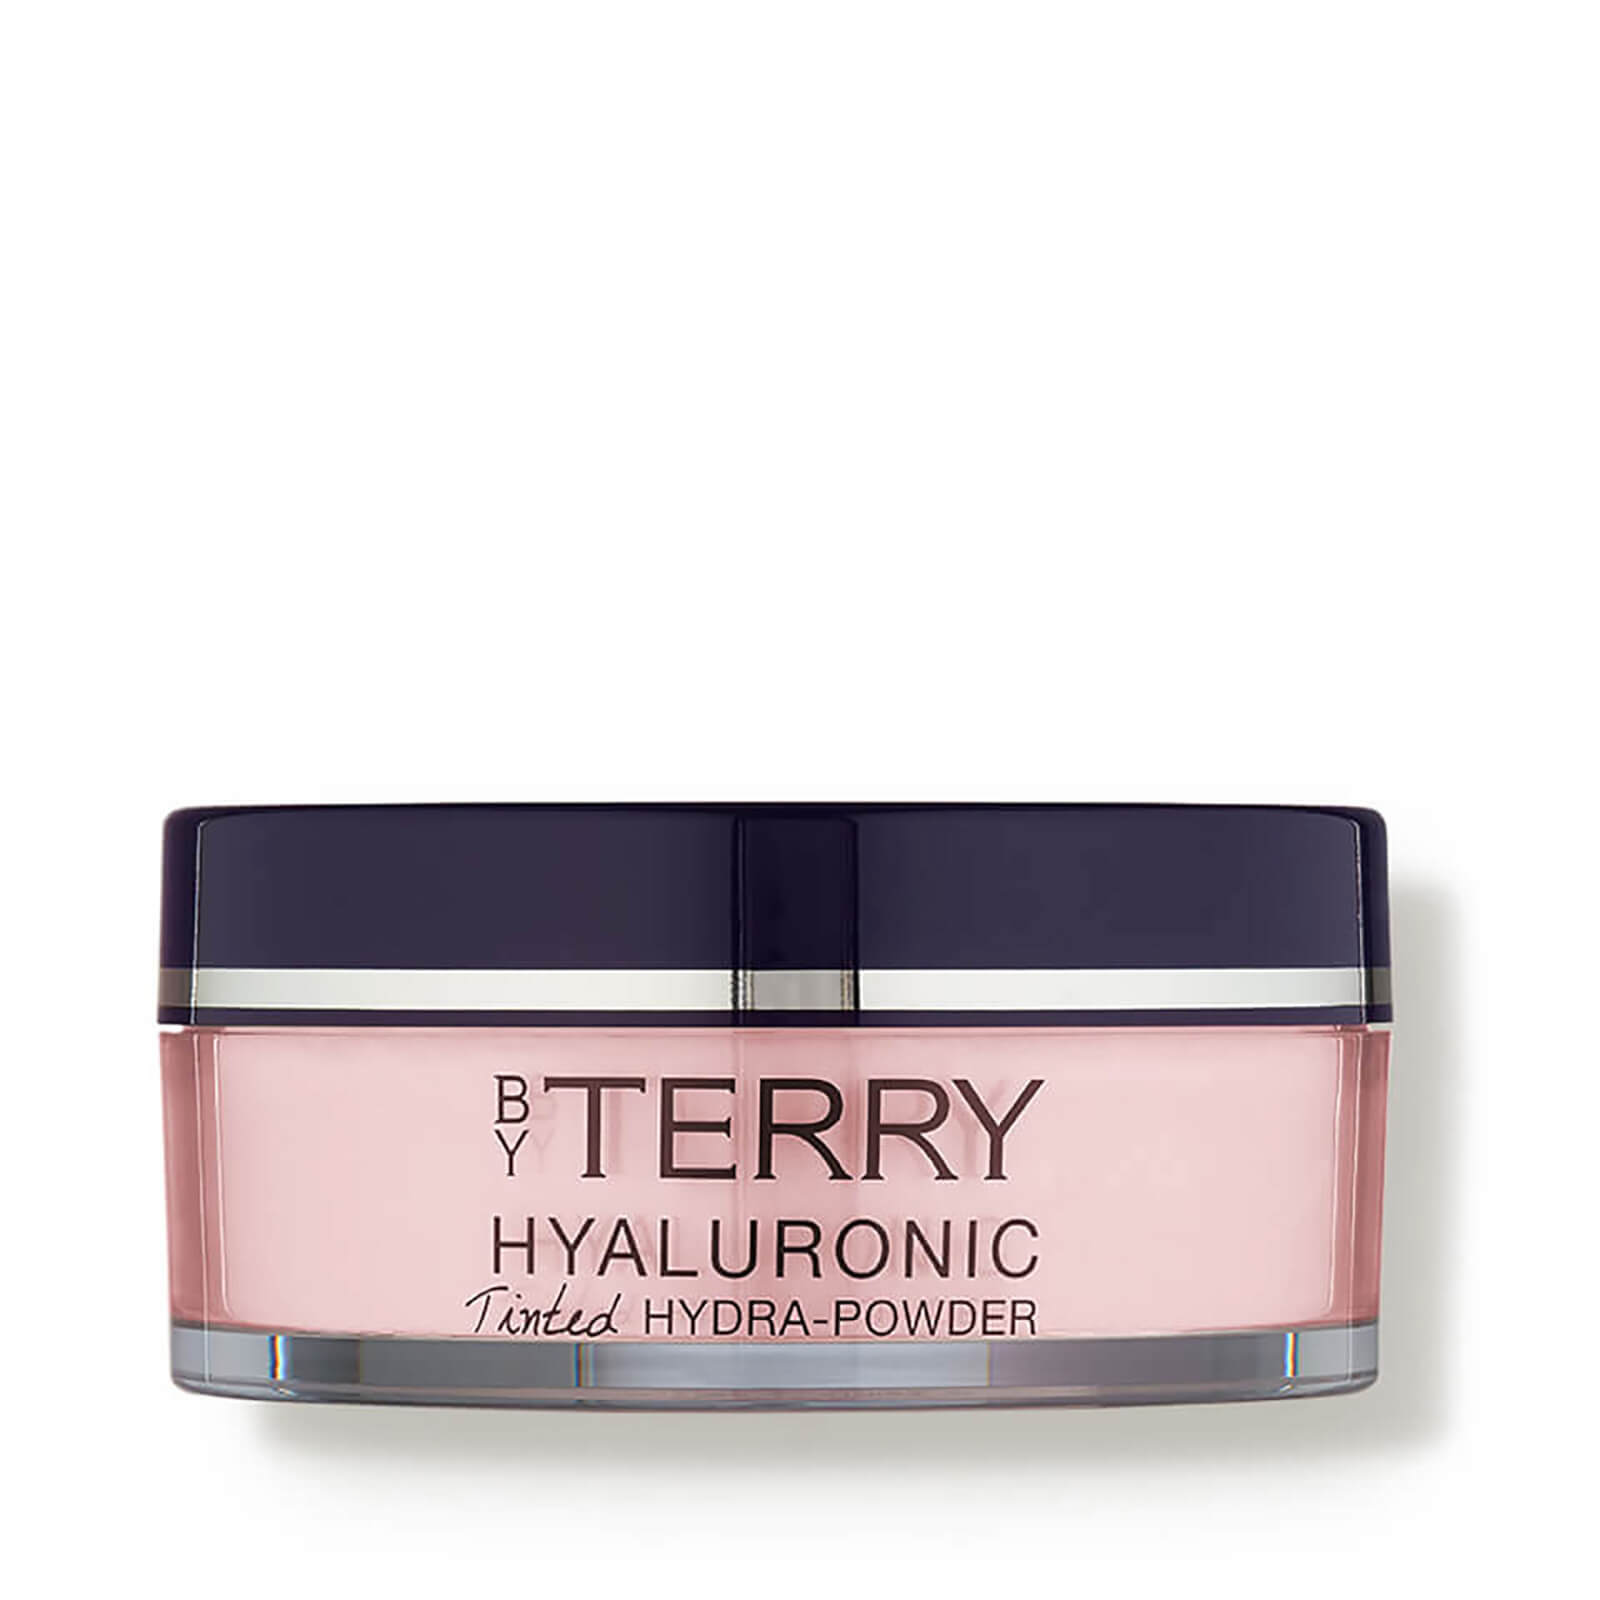 Watch a story about BY TERRY HYALURONIC TINTED HYDRA-POWDER 10G (VARIOUS SHADES) - N1. ROSY LIGHT